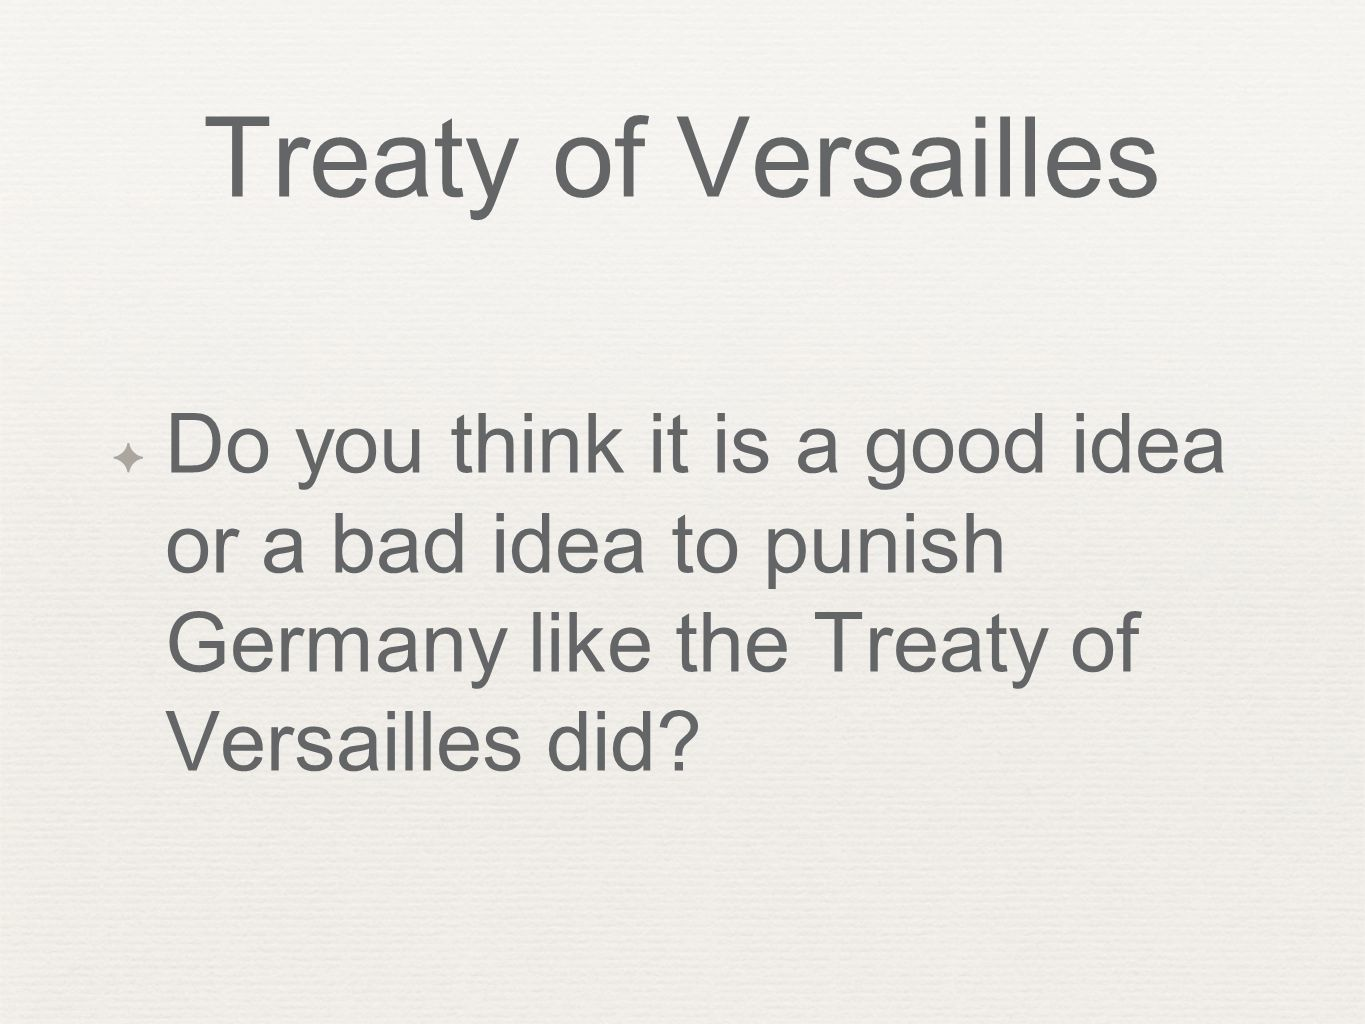 Treaty of Versailles Do you think it is a good idea or a bad idea to punish Germany like the Treaty of Versailles did